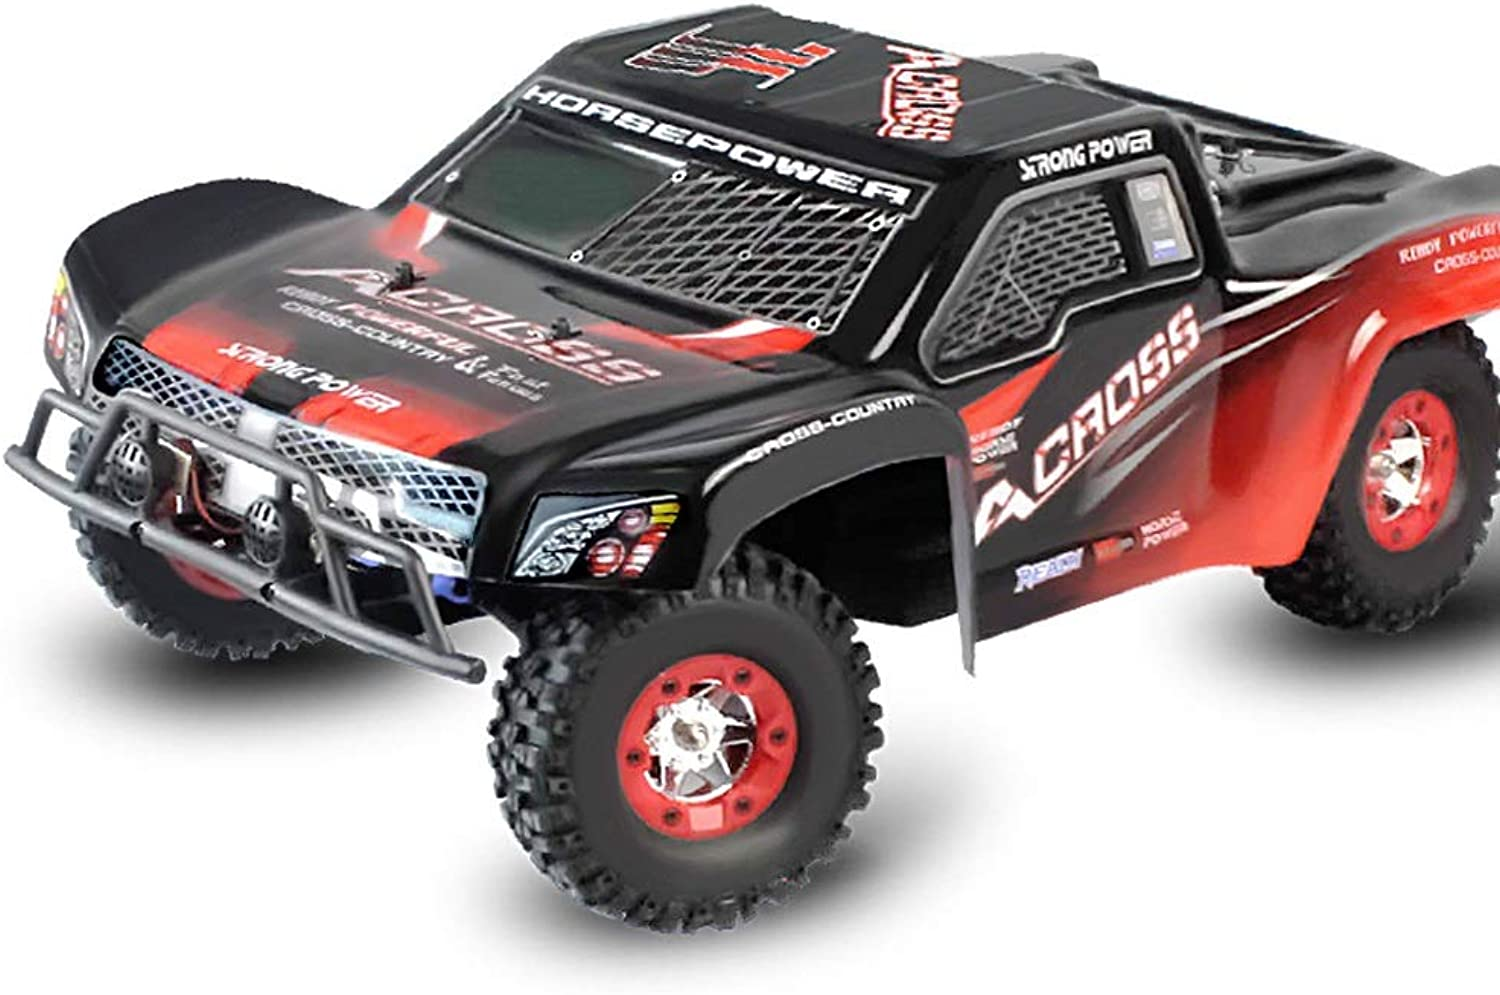 Pinjeer 50KM H High Speed Oversized 1 12 Four-wheel Drive Remote Control Charging Toy Racing Car Adult High Speed Drift Climbing Off-road Vehicle Gifts for Kids 12+ (Size   1-Battery)